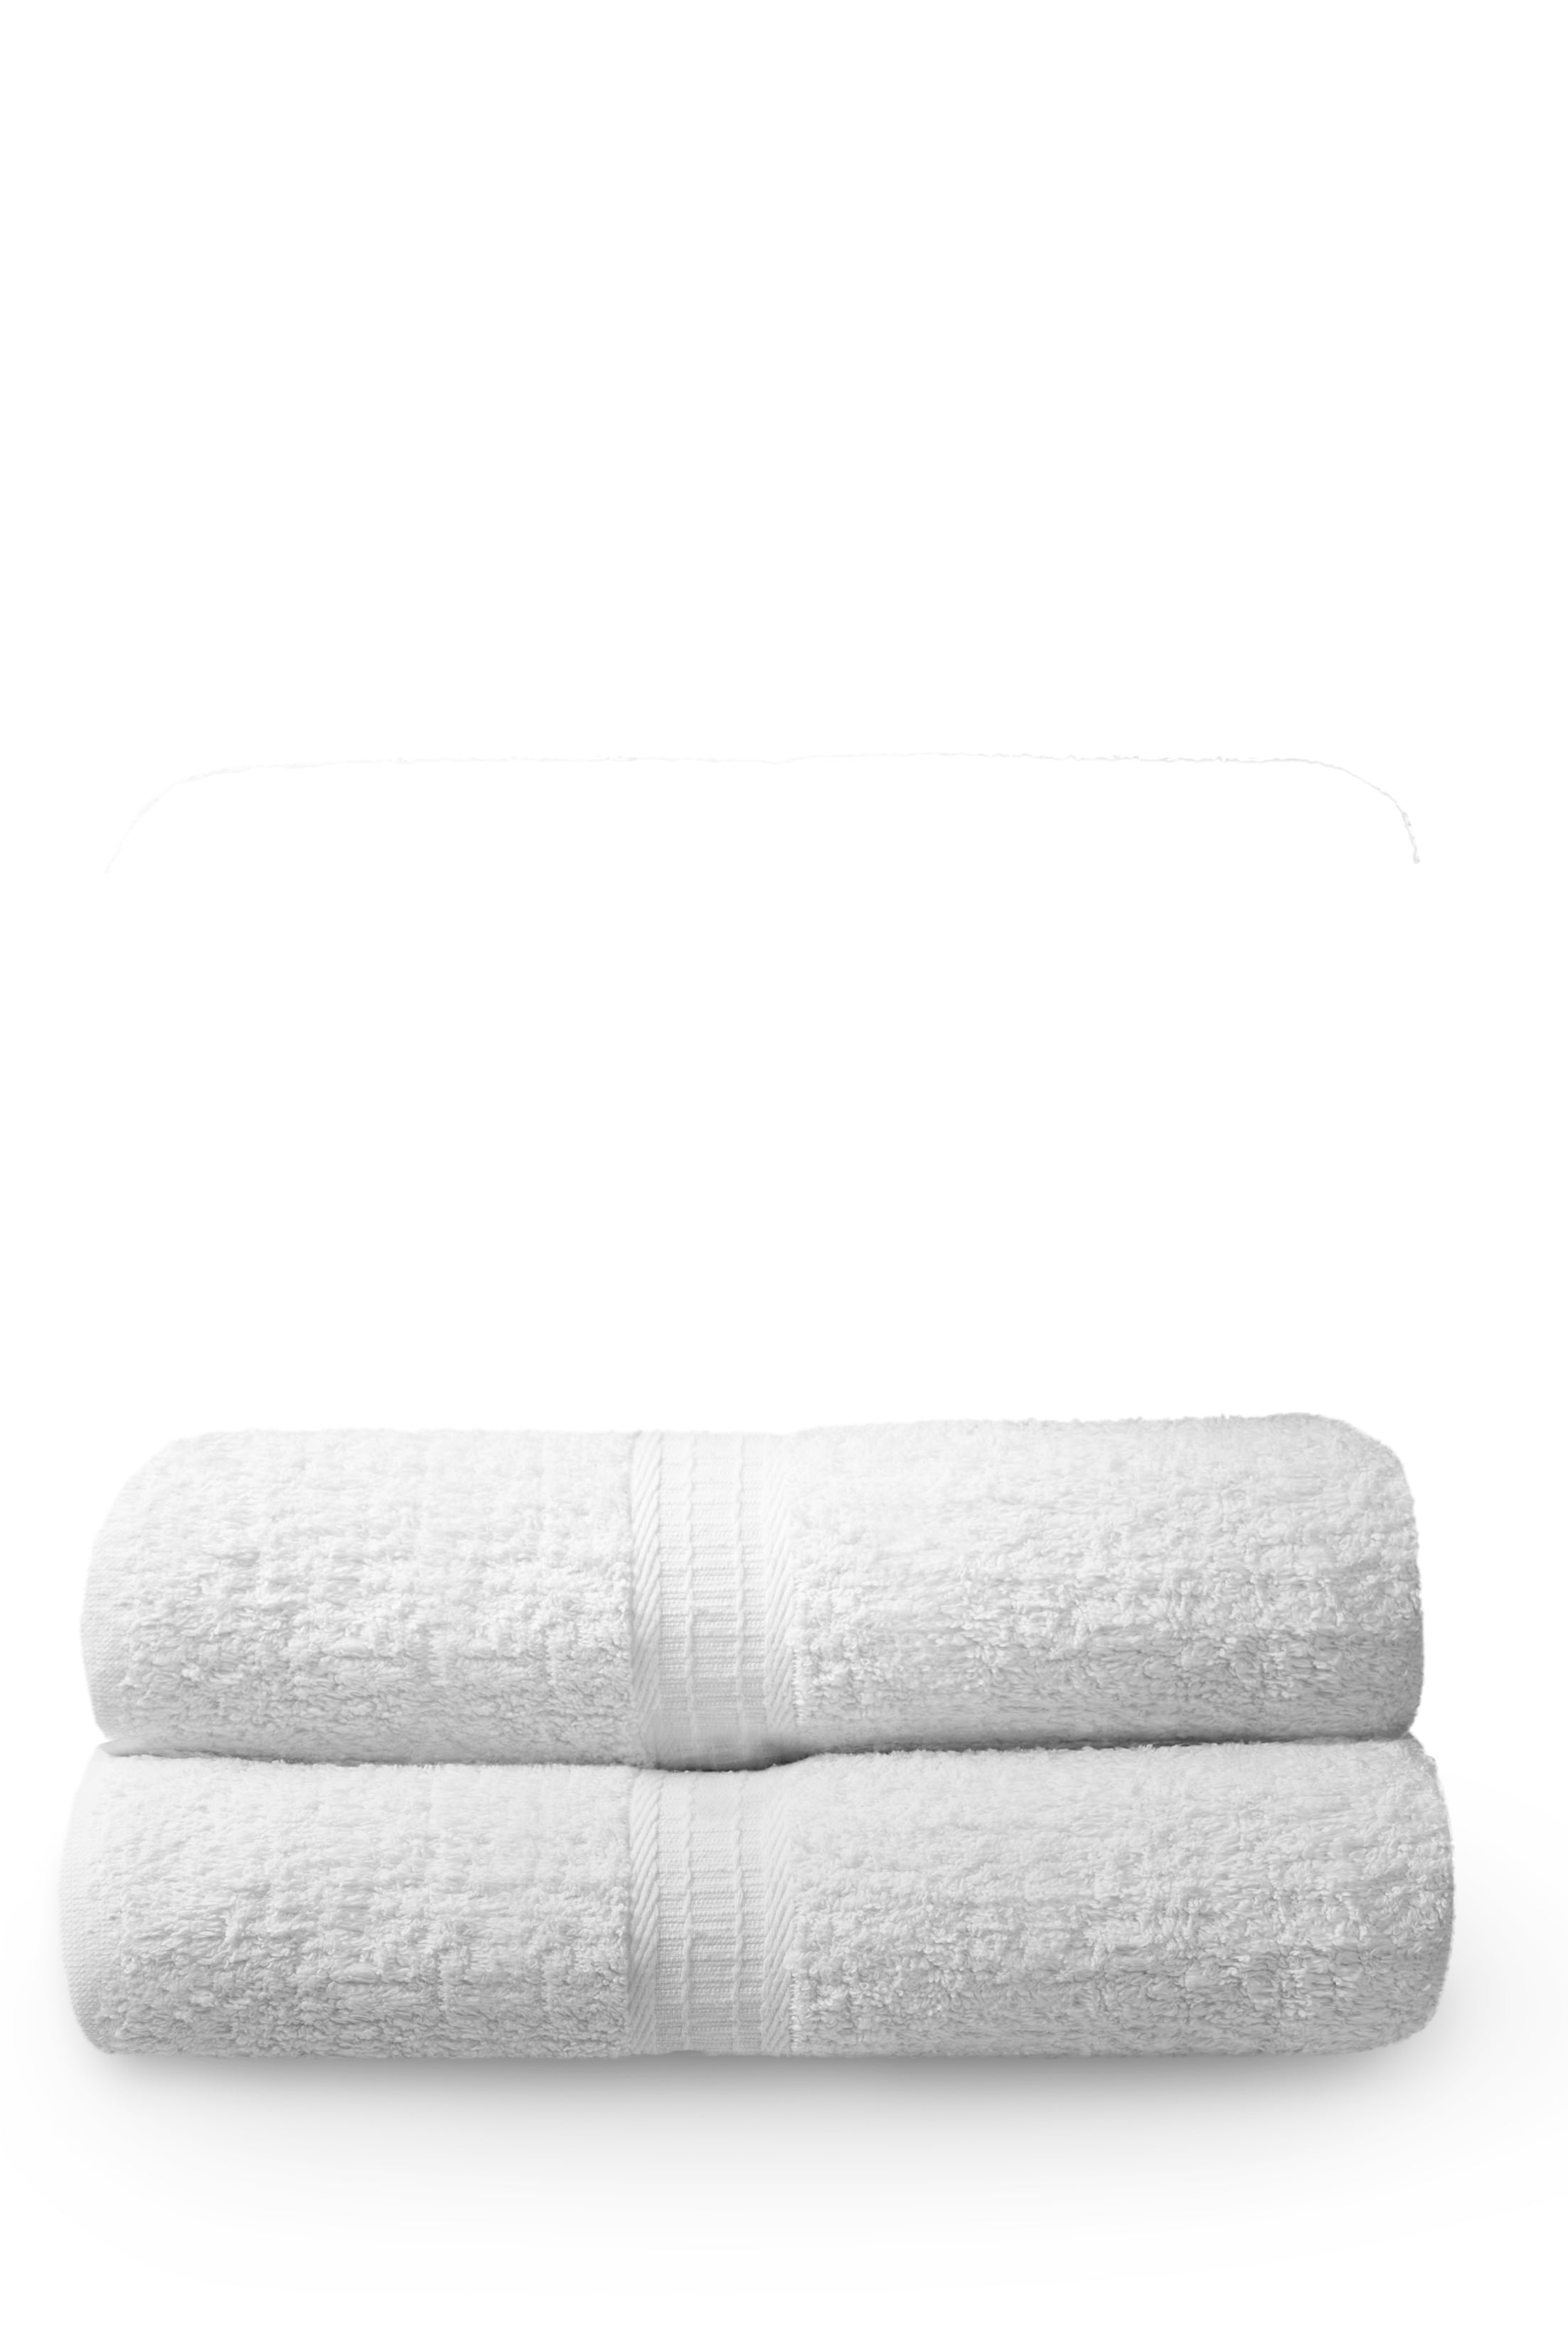 Two Rapport Home Royal Kensington Hotel-Grade Bath Sheets